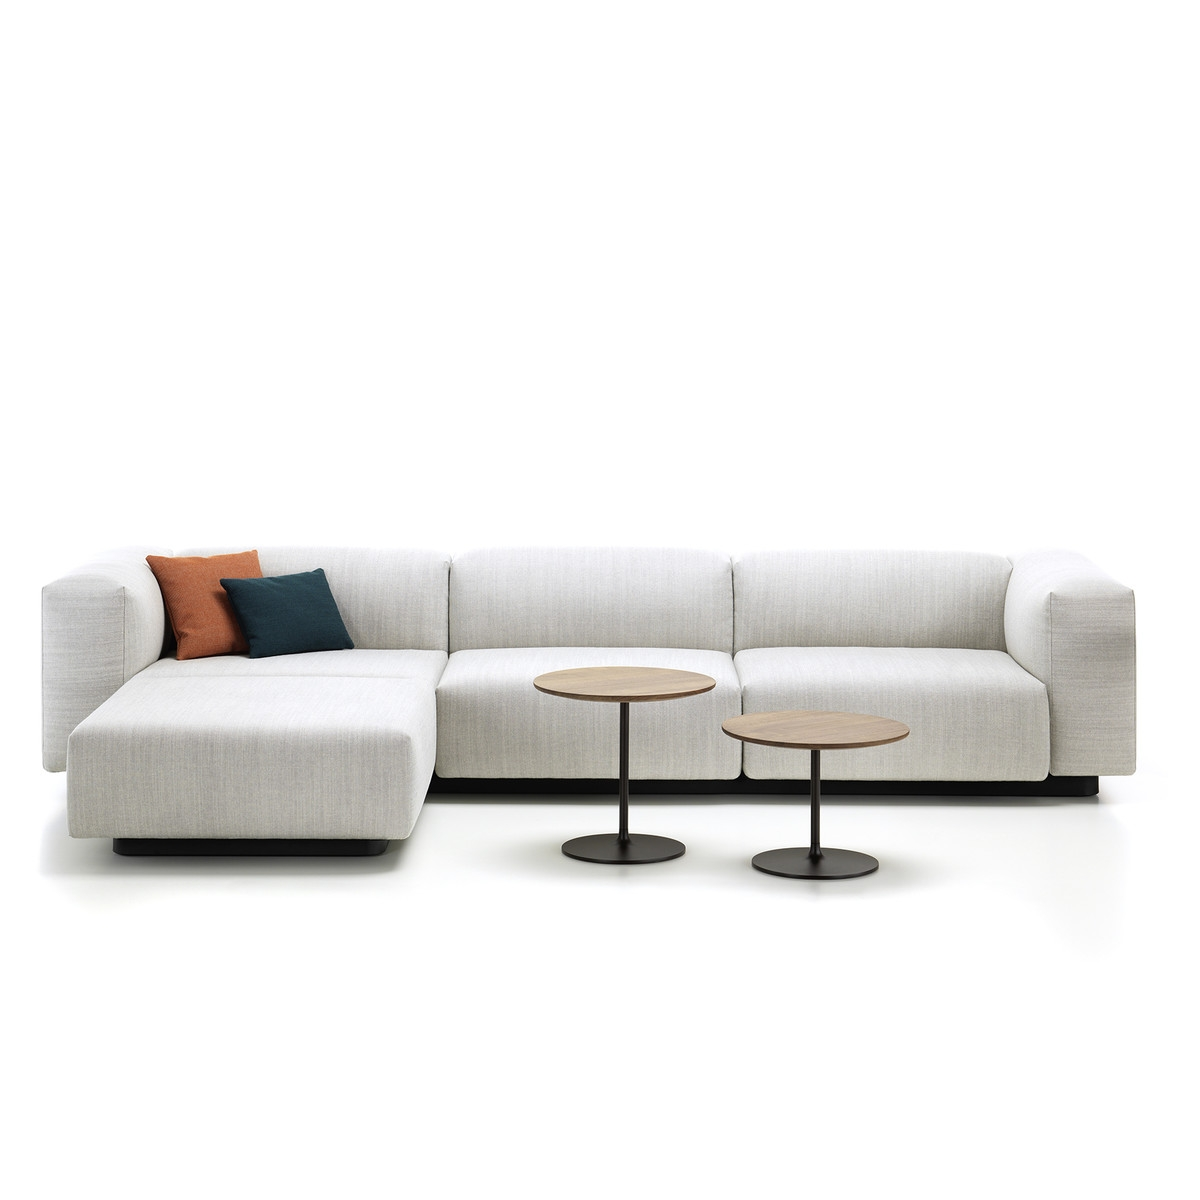 Buy The Soft Modular Corner Sofa From Vitra In Modular Corner Sofas (Image 2 of 15)